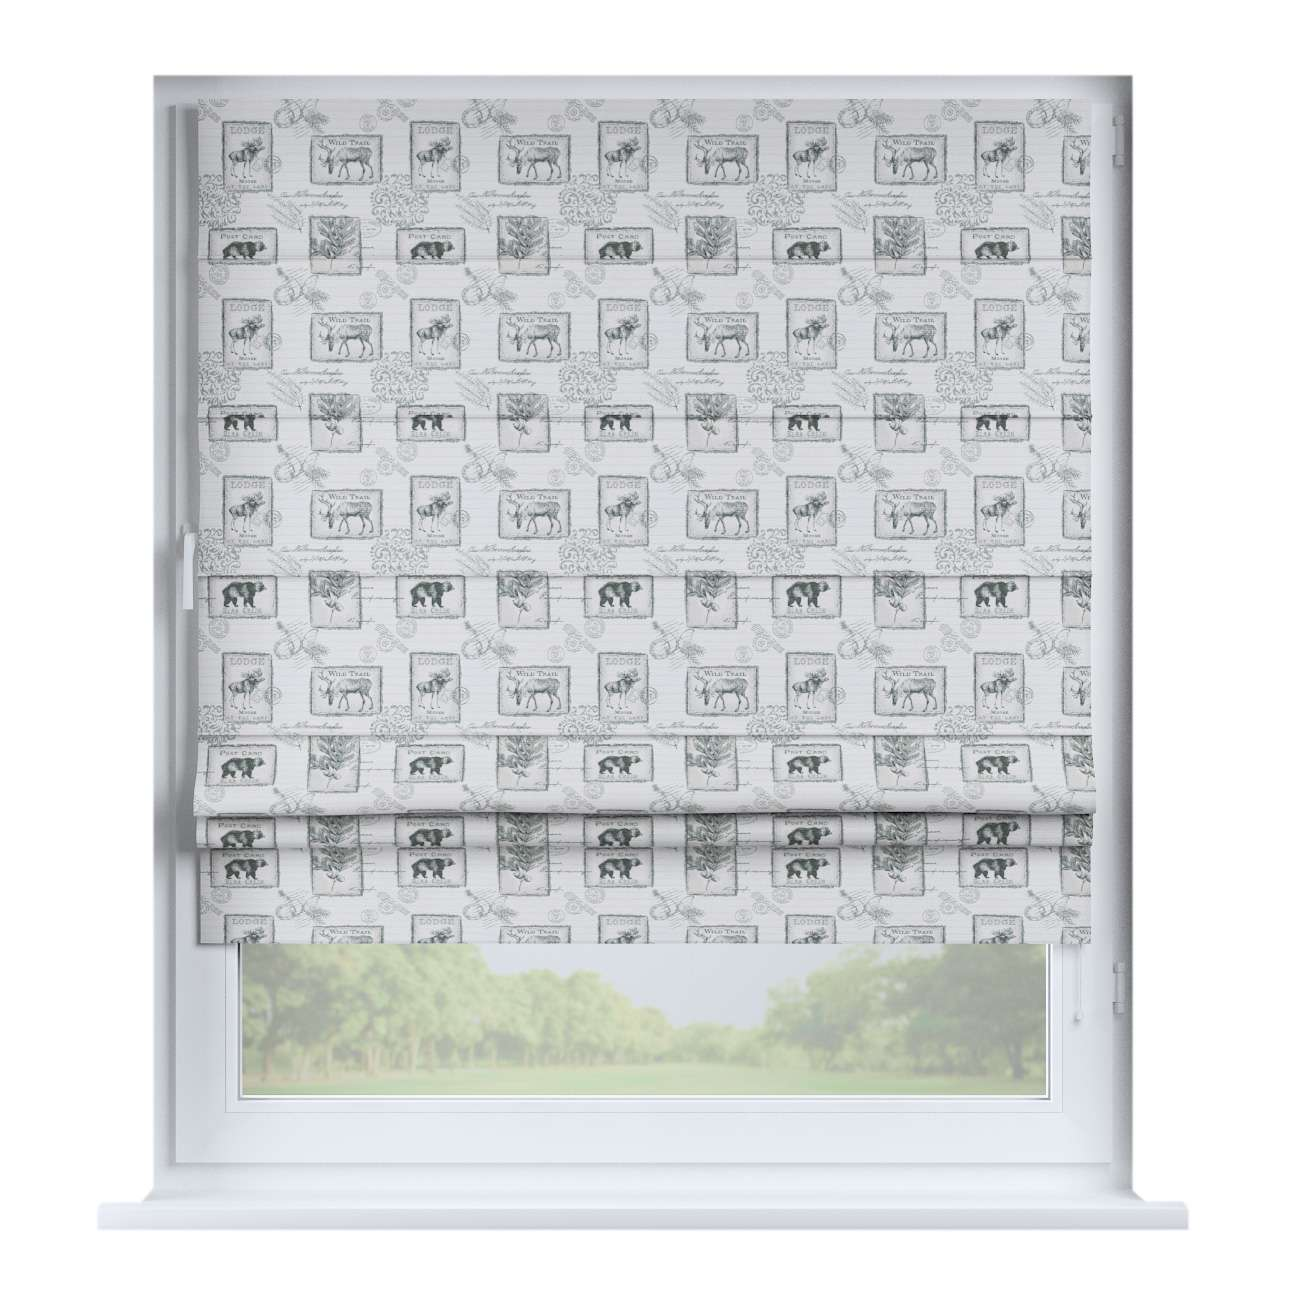 Padva roman blind  80 x 170 cm (31.5 x 67 inch) in collection Nordic, fabric: 630-18